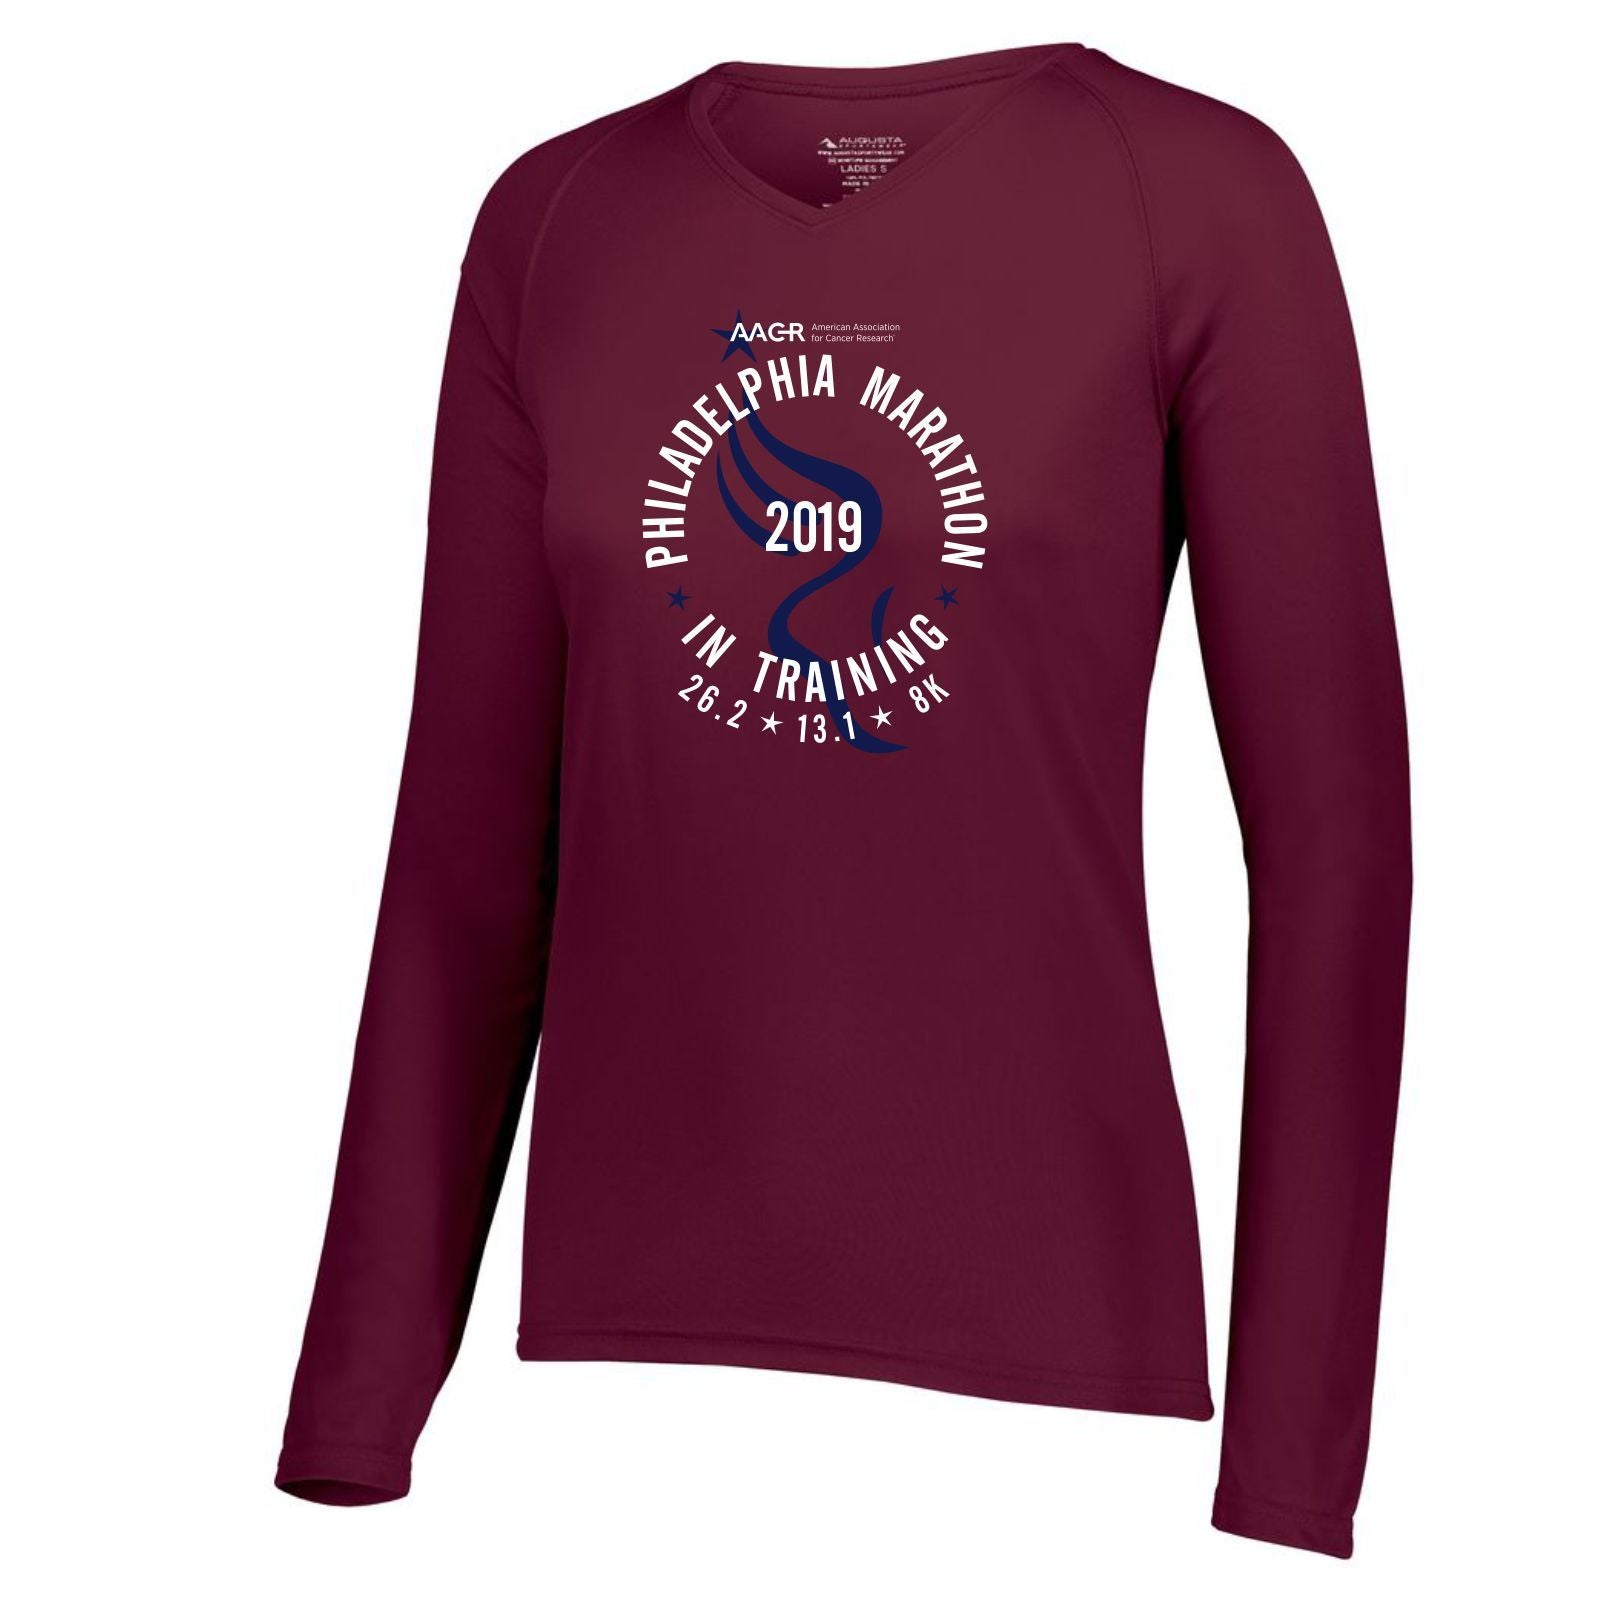 AACR Philadelphia Marathon 'In Training 2019' Women's LS Tech V-Neck Tee